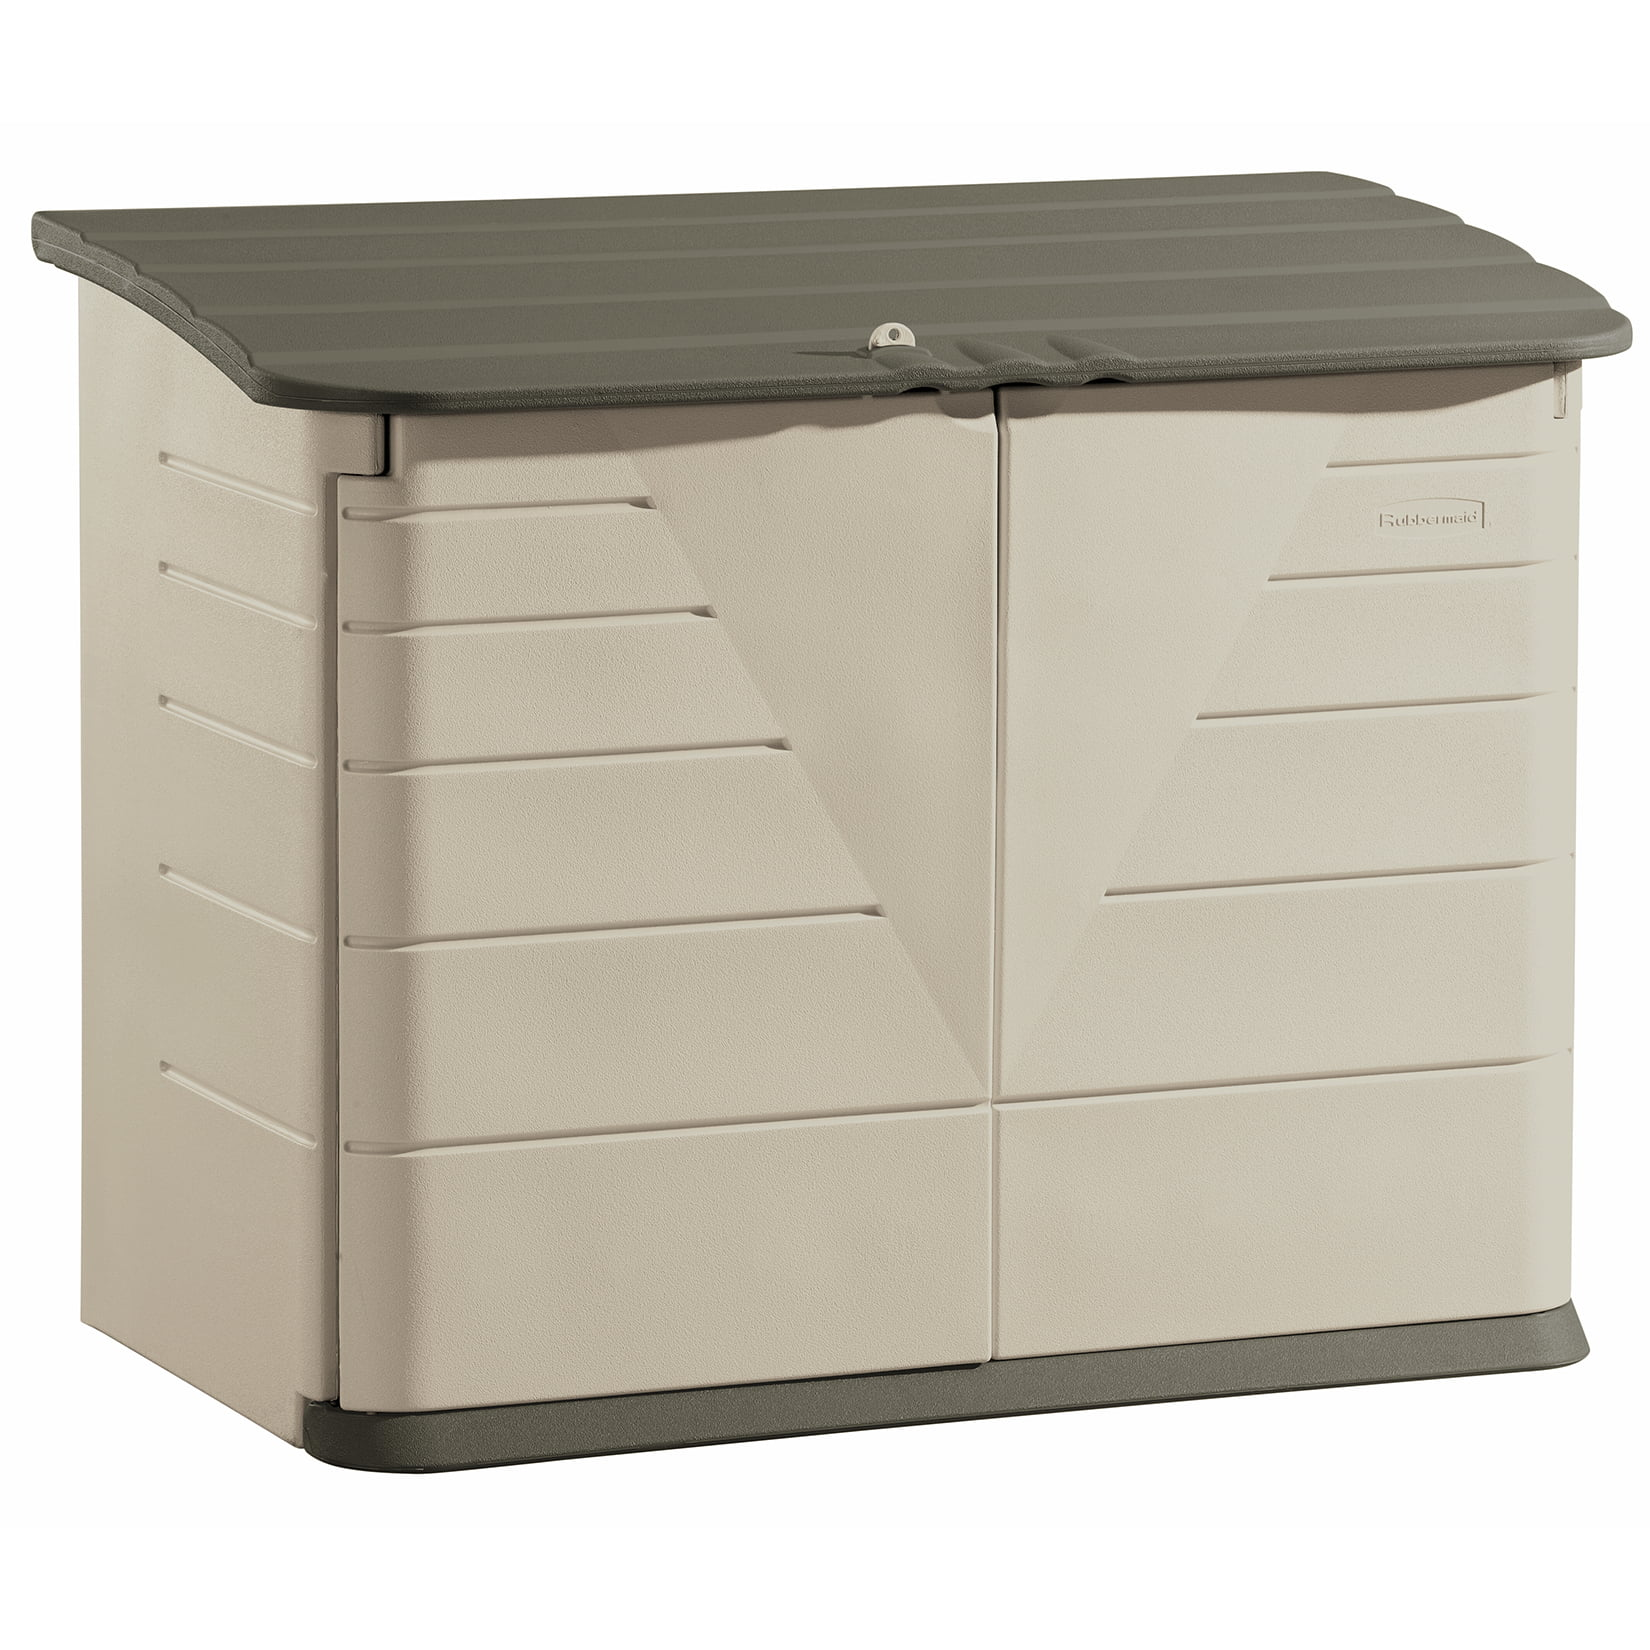 Rubbermaid Large Horizontal Storage Shed, Olive & Sandstone by Rubbermaid Home Products